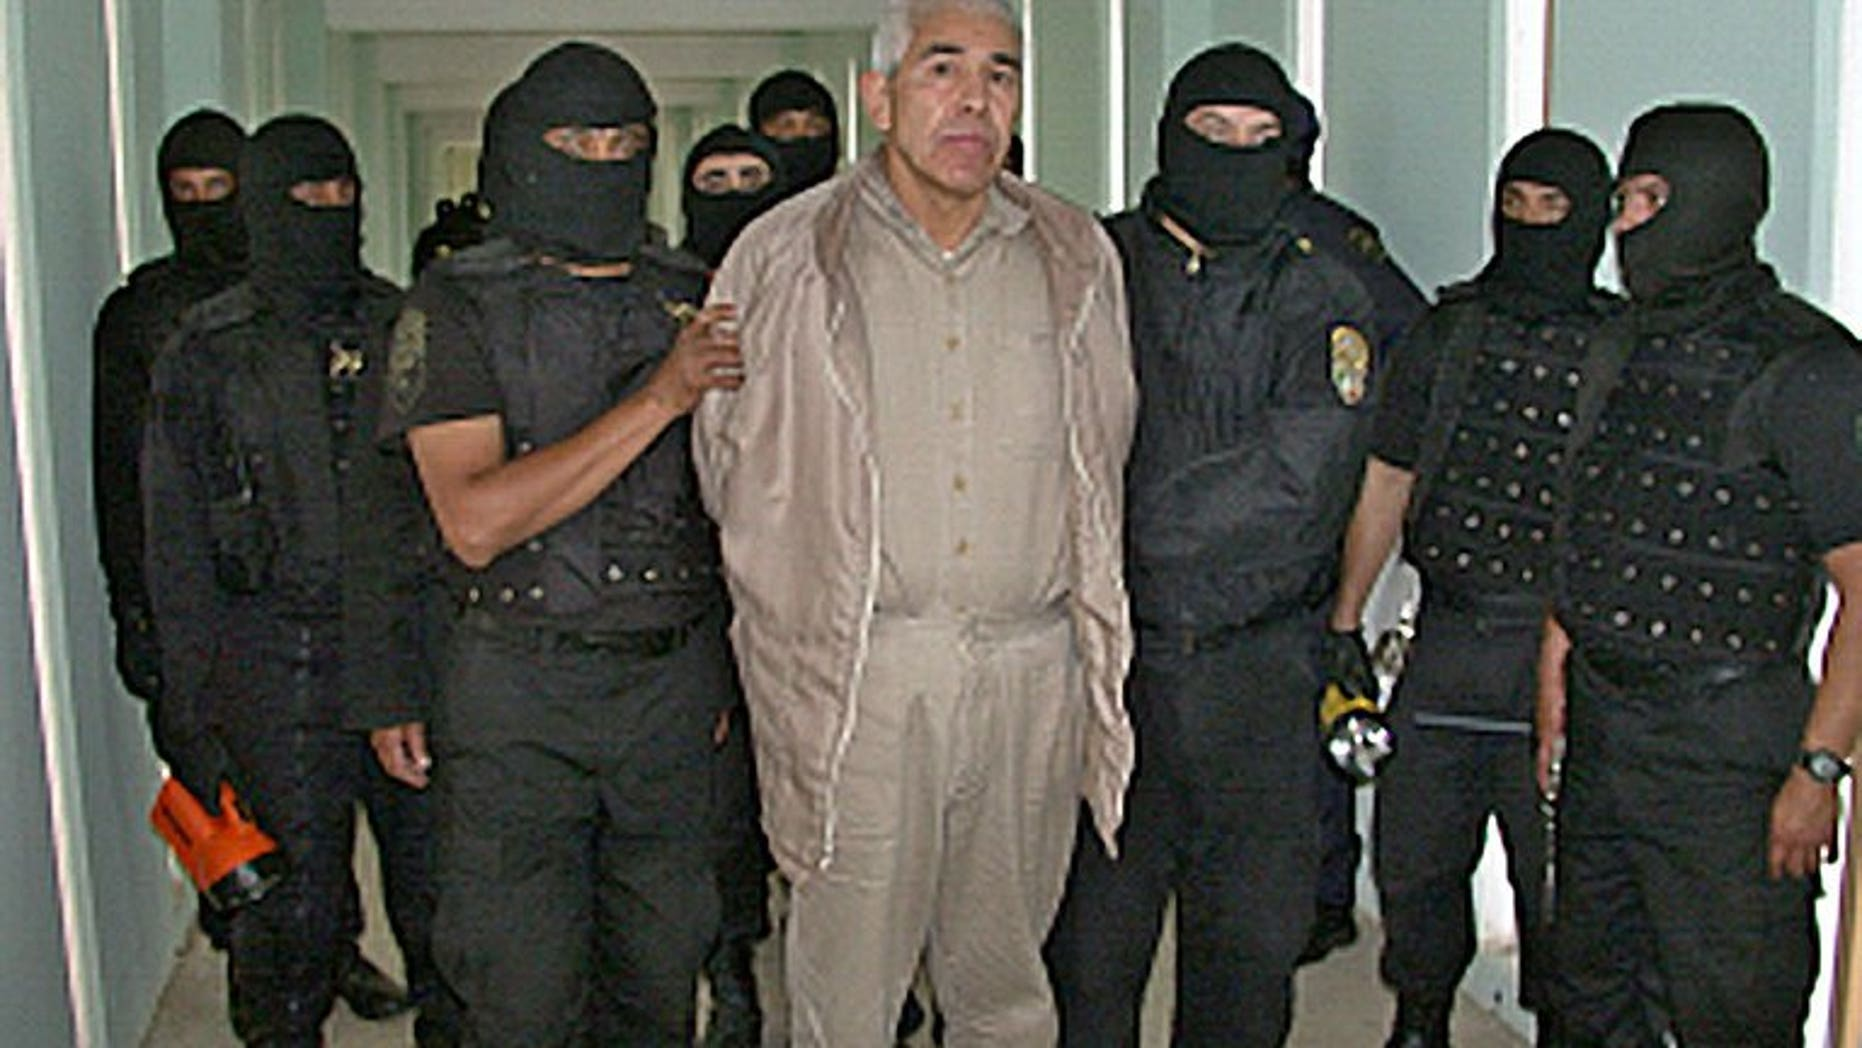 This file photo shows Rafael Caro Quintero (C), a drug lord convicted of killing a US drug agent in 1985, under custody at the 'Puente Grande' prison in Guadalajara, on January 29, 2005. Caro Quintero had another 12 years to go in his sentence, and could have faced additional charges in the US, but on August 7 a judge in the western state of Jalisco ordered his release on a technicality.